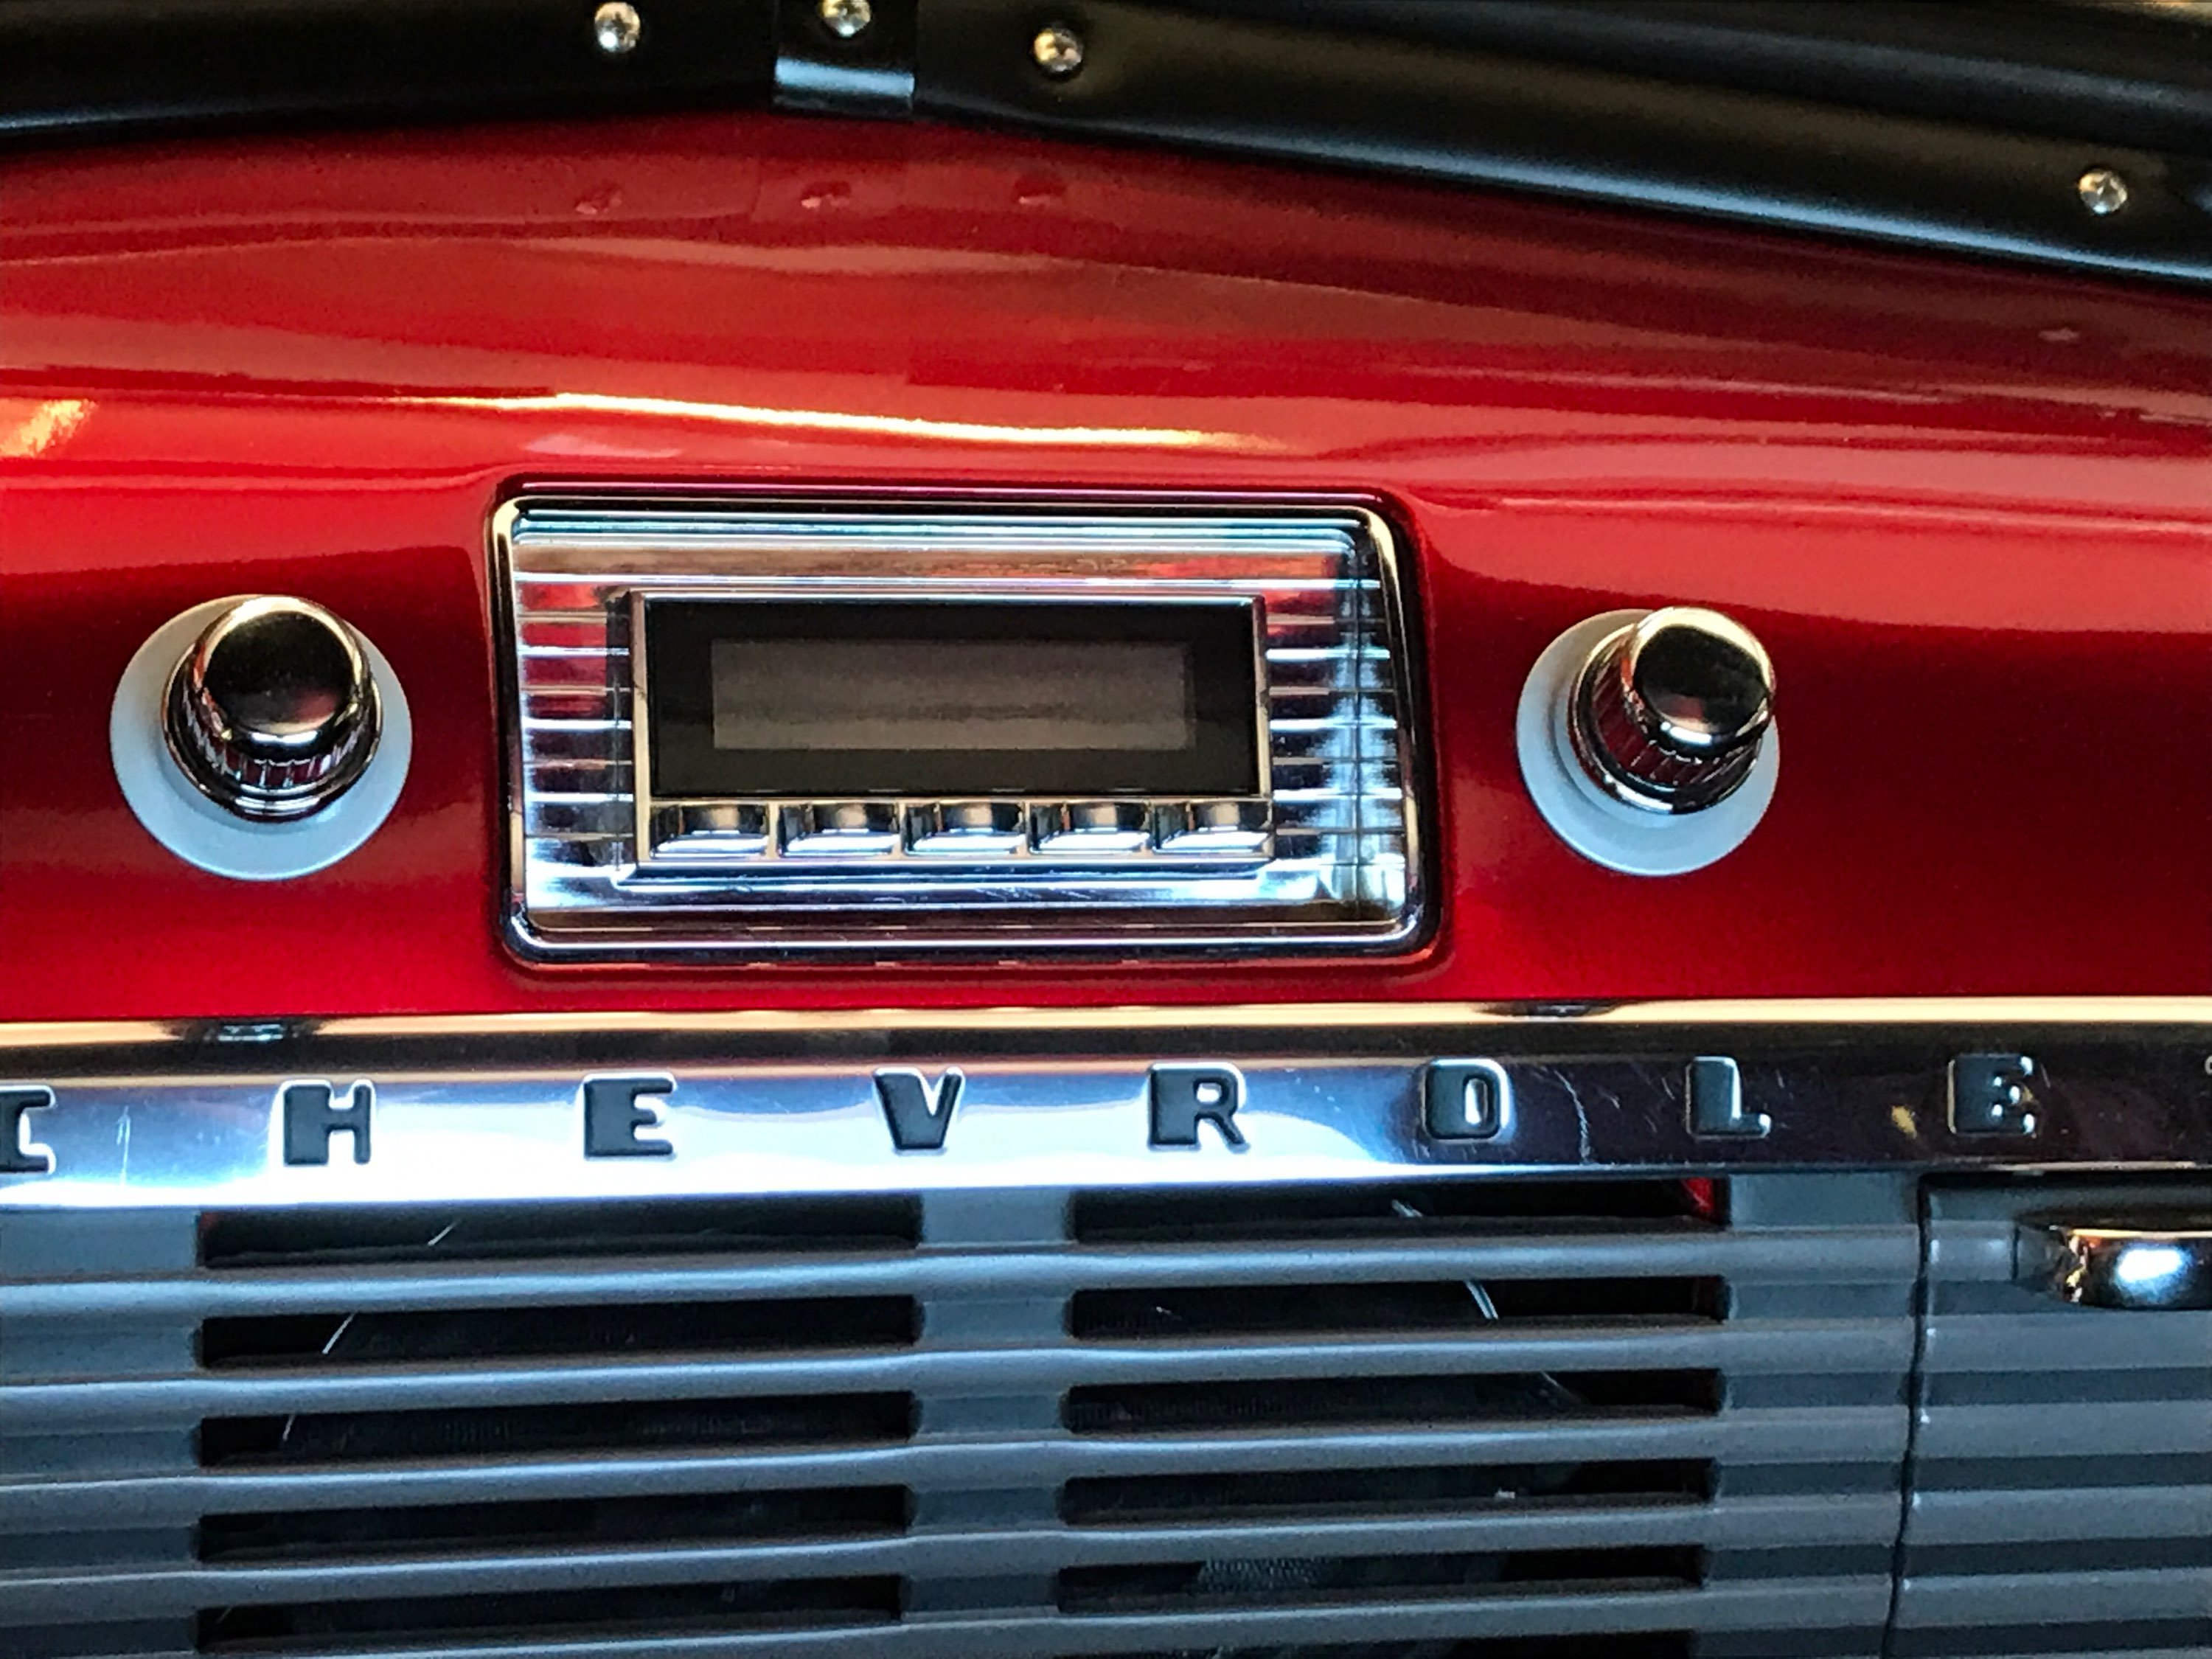 Classic Chevy Truck Stereo Upgrade - Next Gen Audio Video